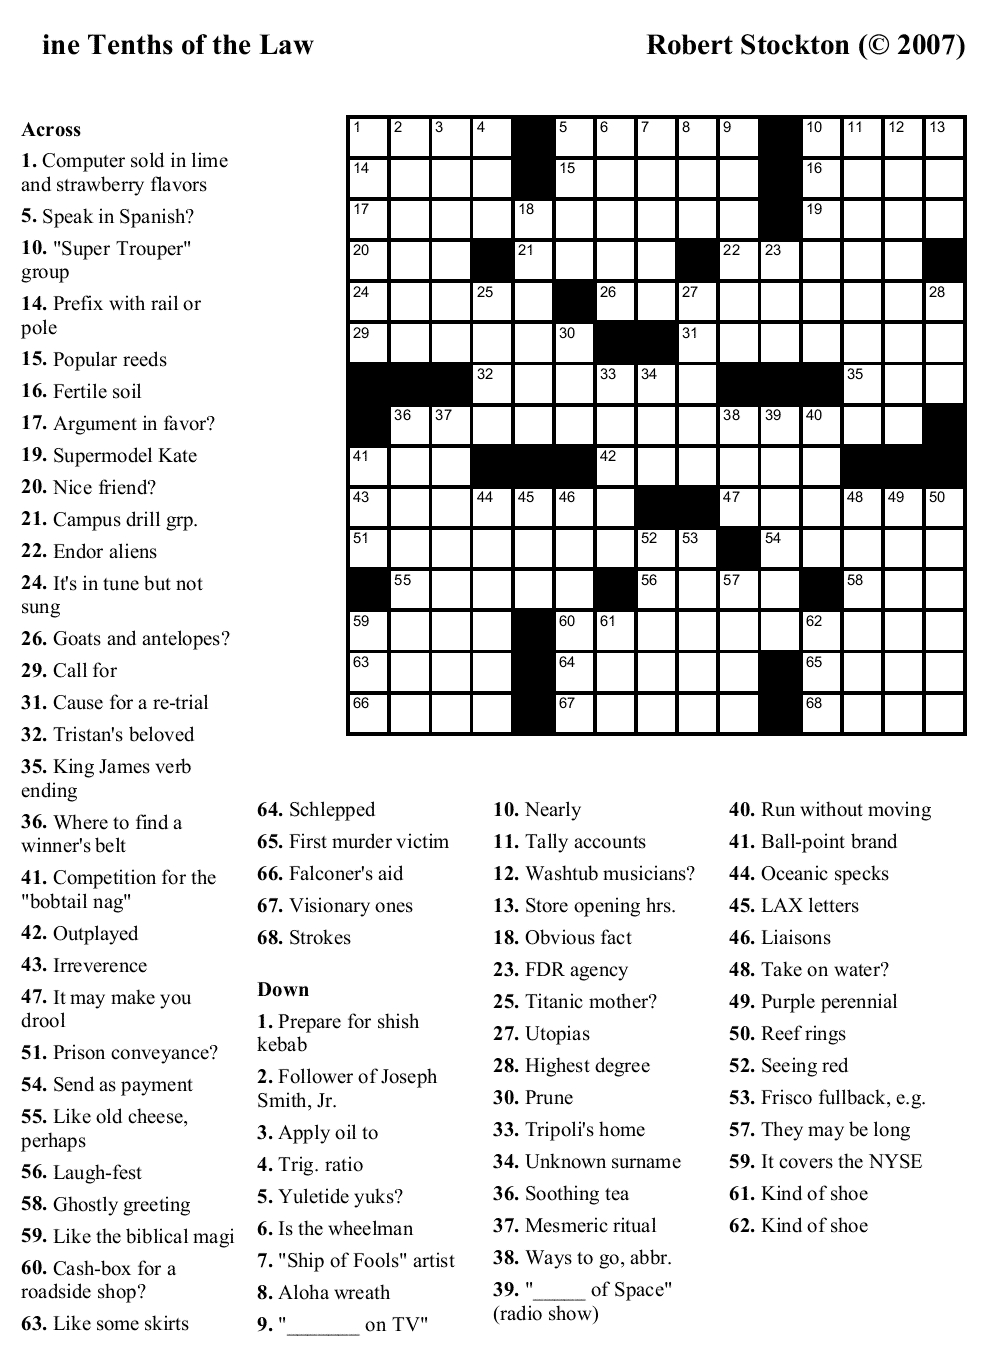 Crossword Puzzles Printable - Yahoo Image Search Results | Crossword - Printable Crossword Puzzles About Sports